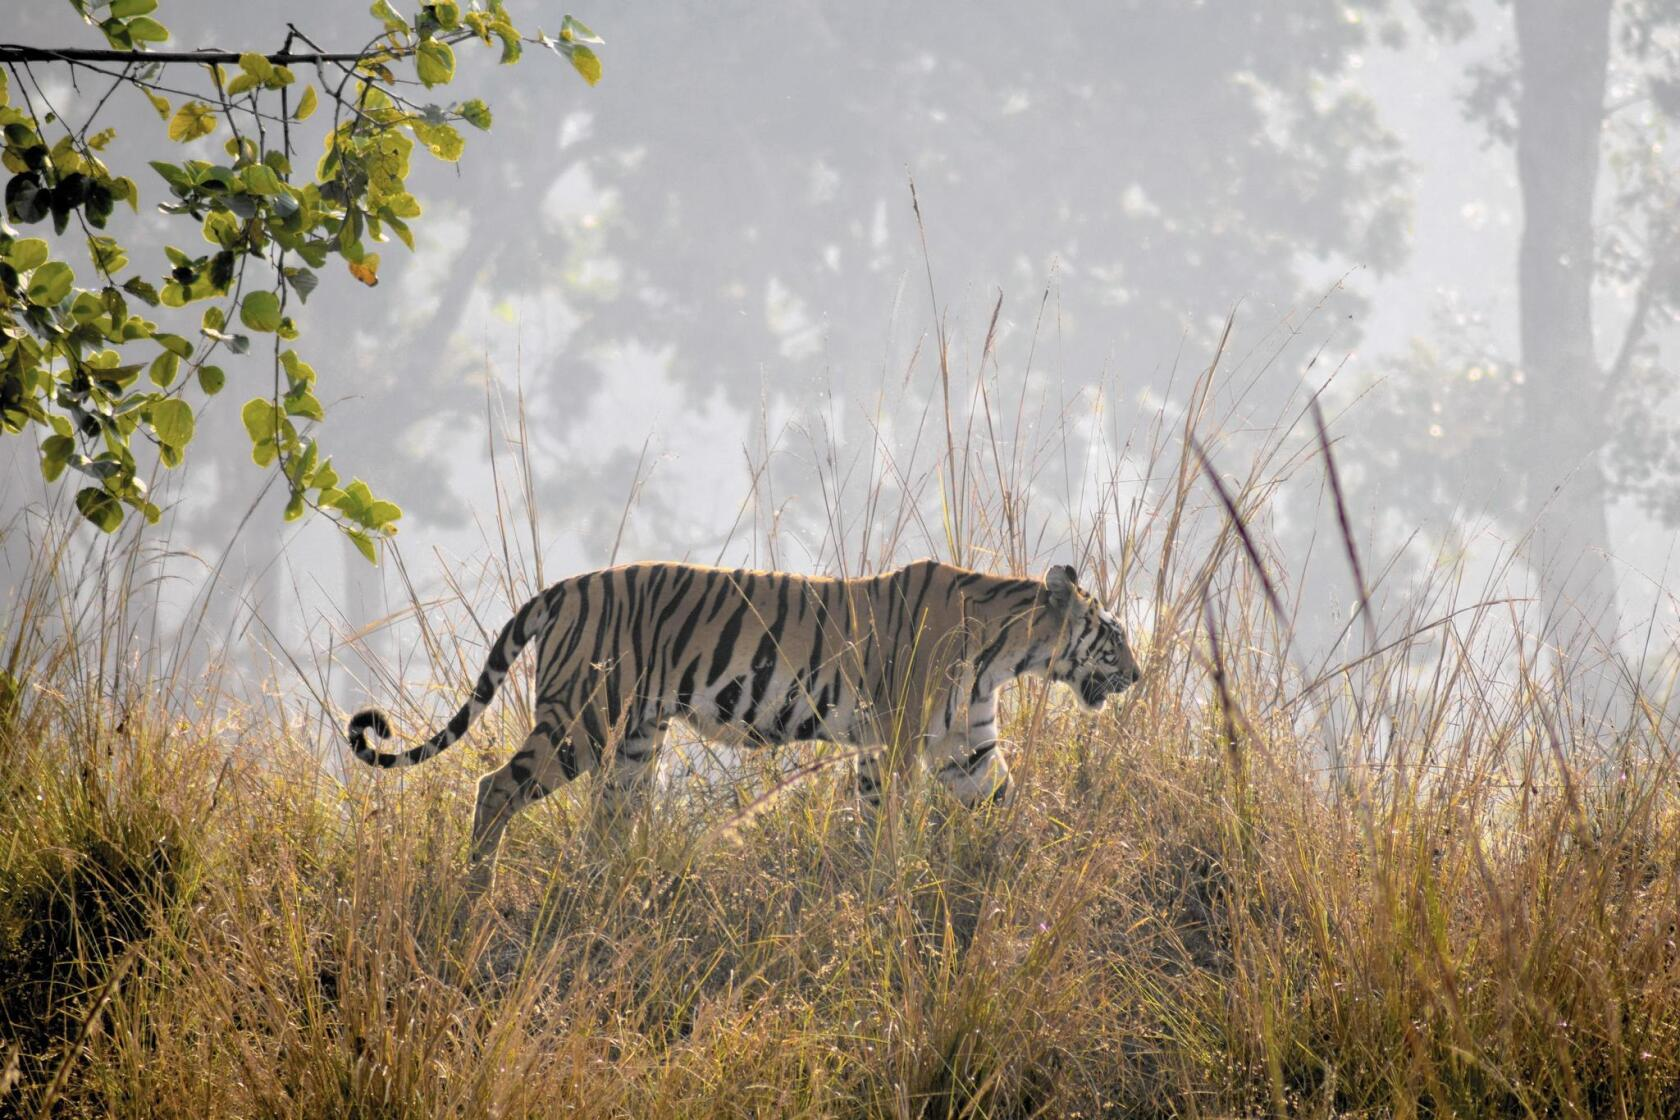 Out of India: Tracking big cats on safari through the 'Tiger State'